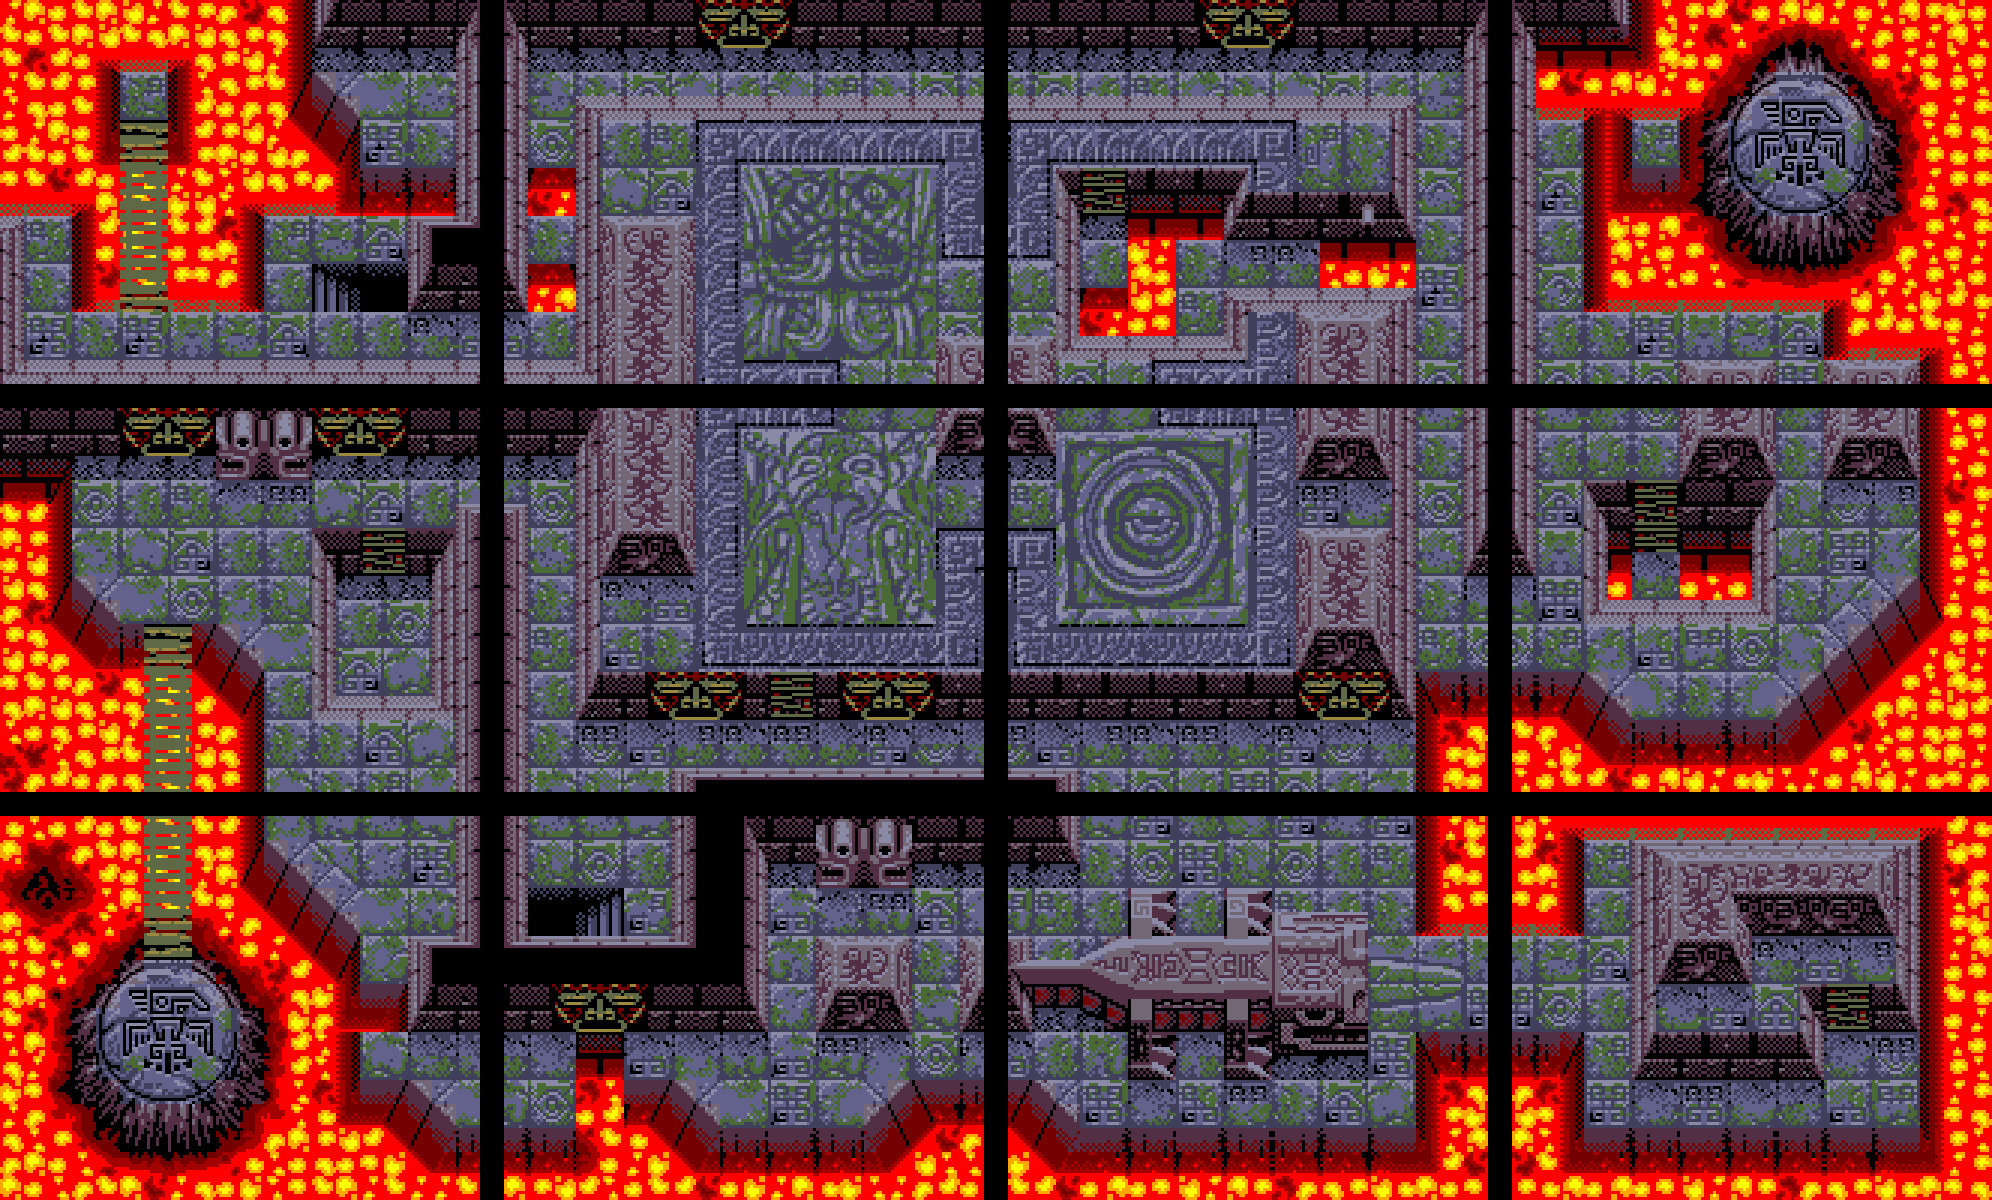 Lava level. 4 Gameboy screens across by 3 down.